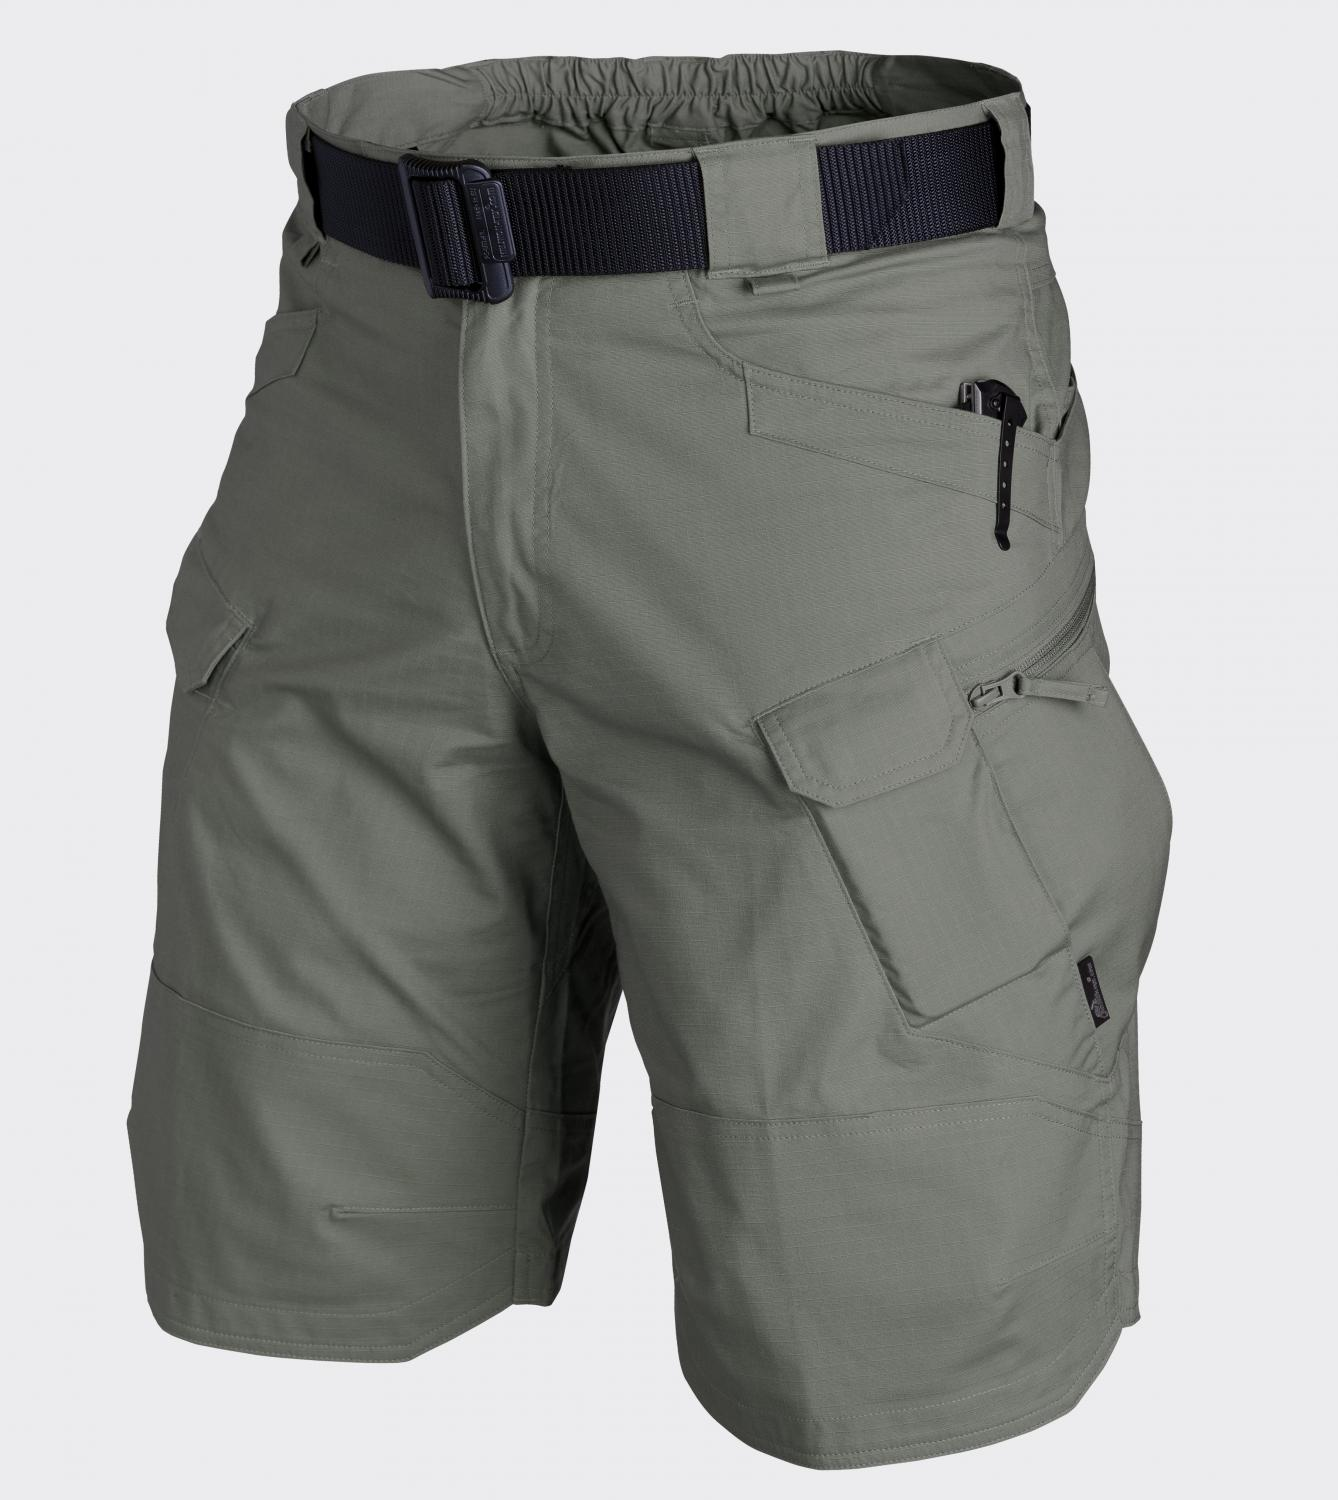 URBAN TACTICAL SHORTS® 11'' - PolyCotton Ripstop Olive Drab